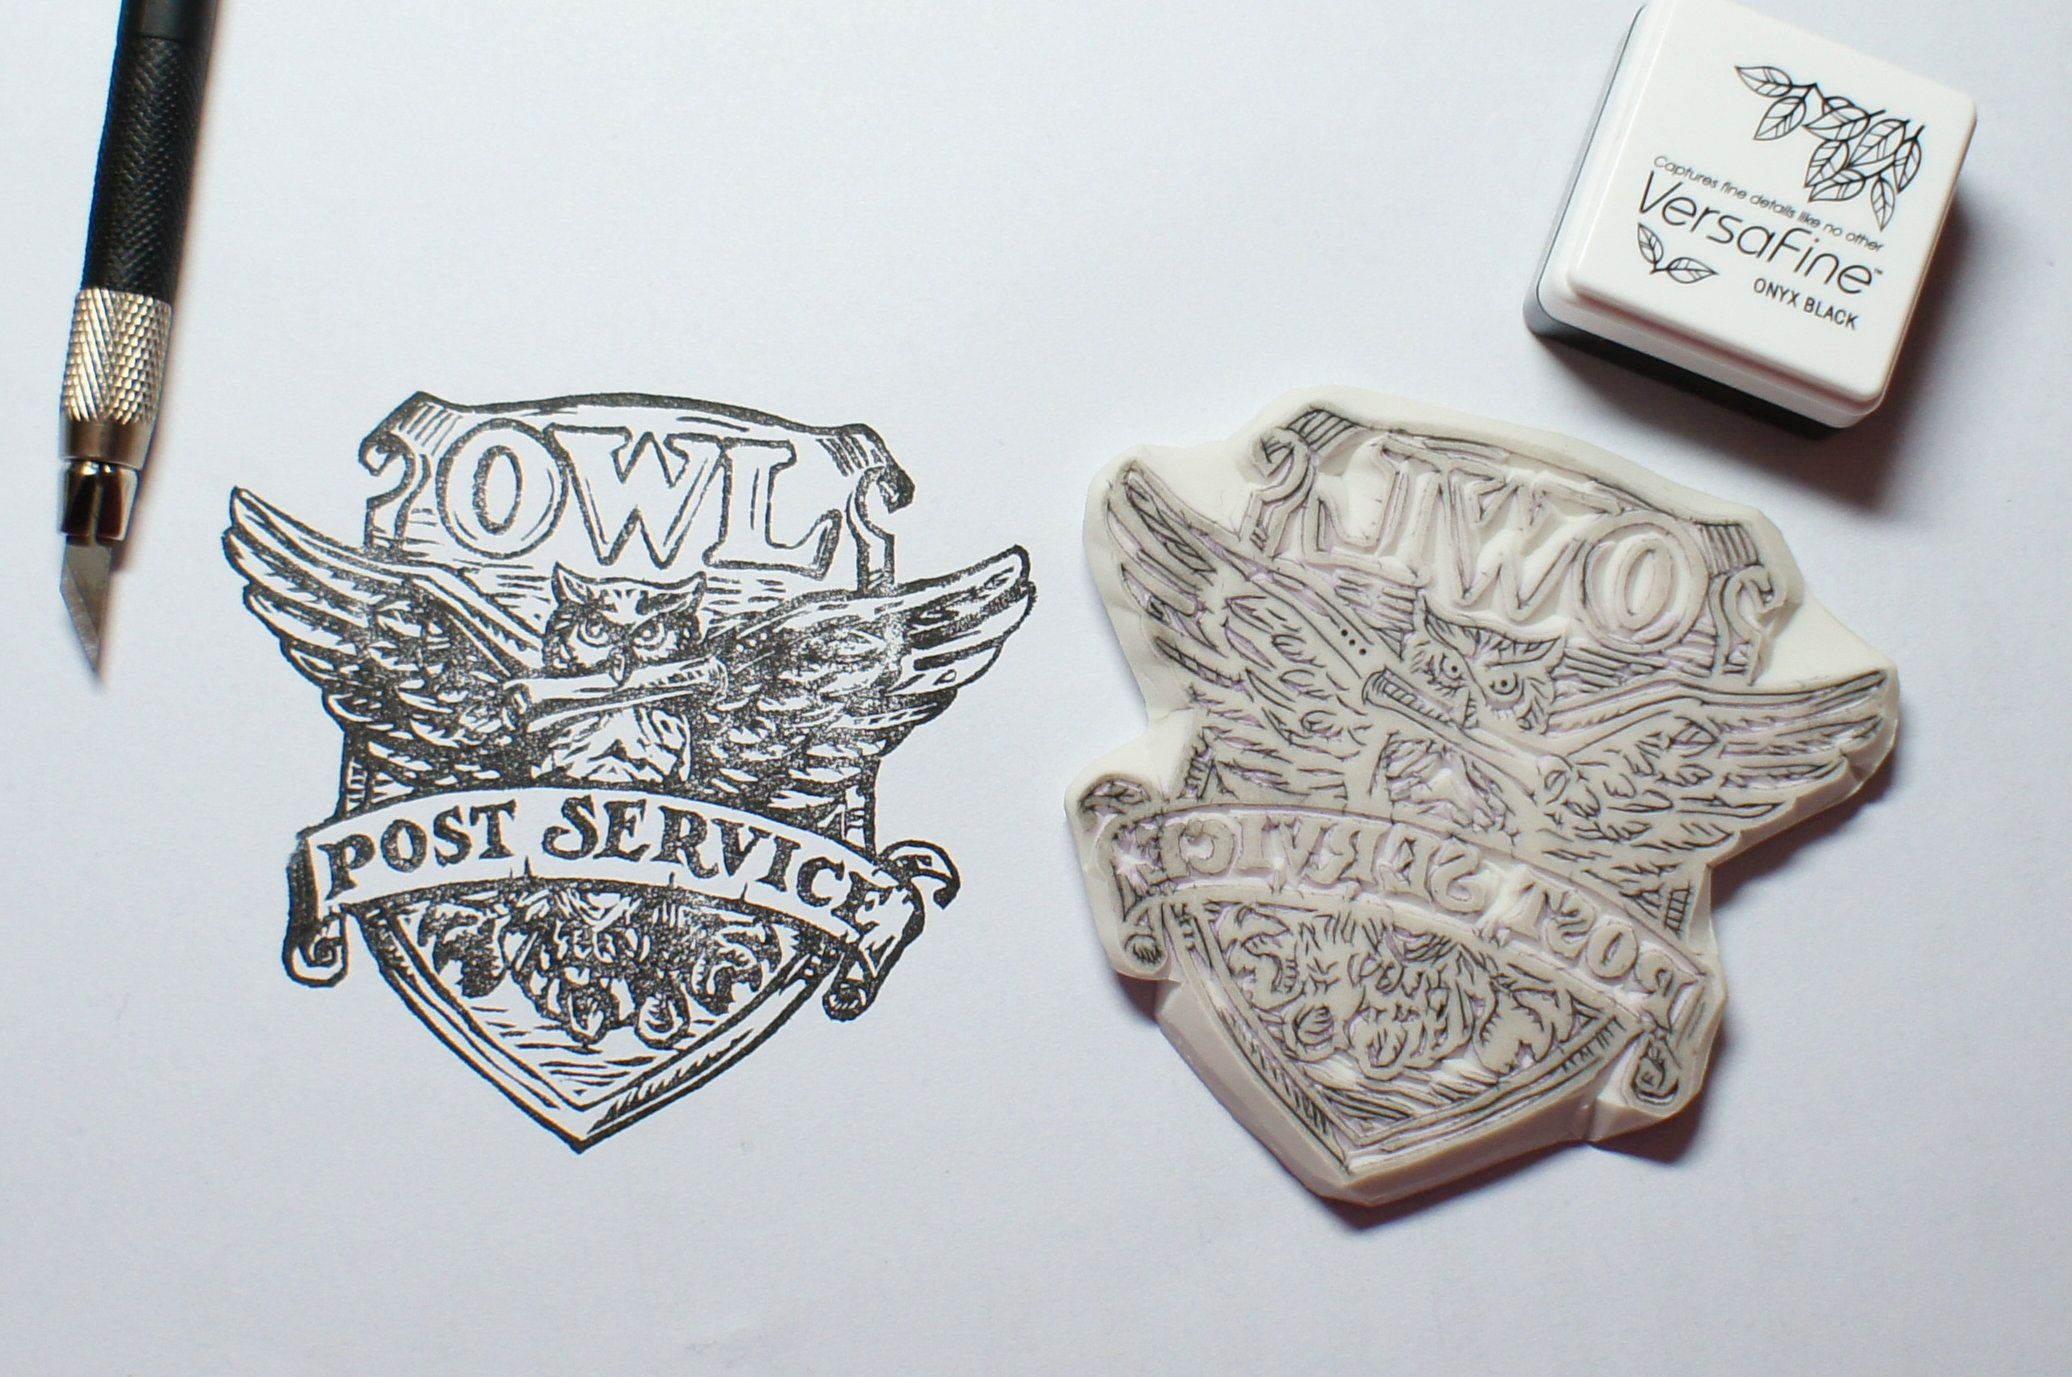 Owl Post Office From Harry Potter Rubber Stamp Stamp Owl Post Potter